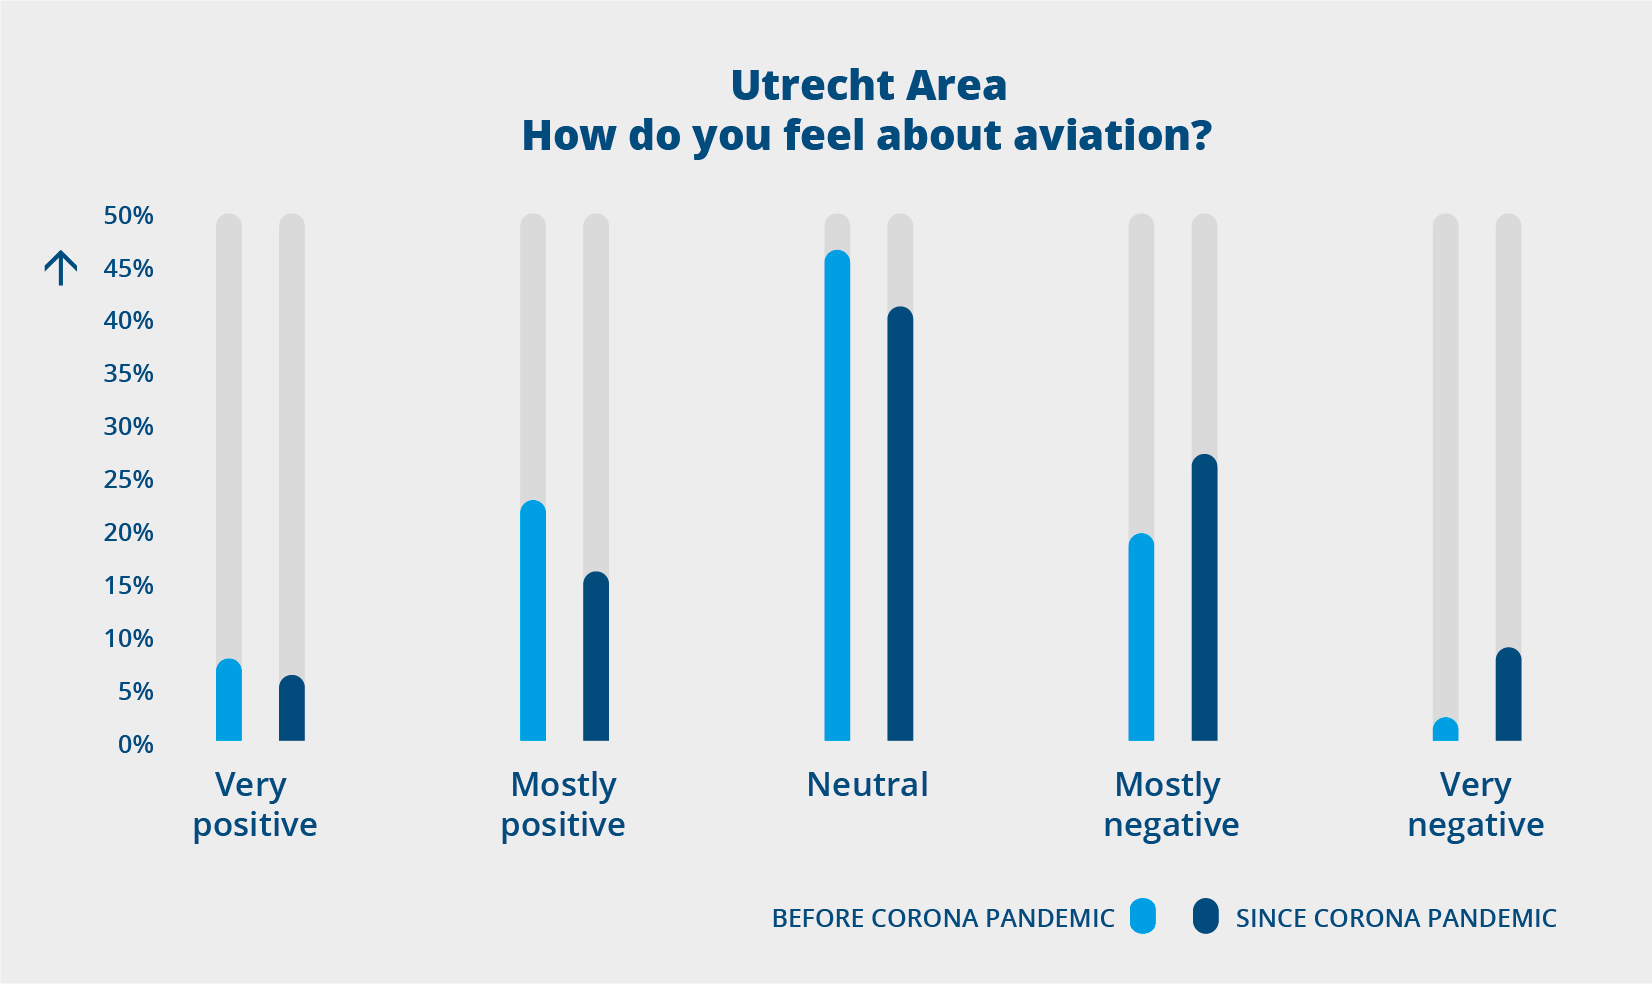 Utrecht area: How do you feel about aviation?